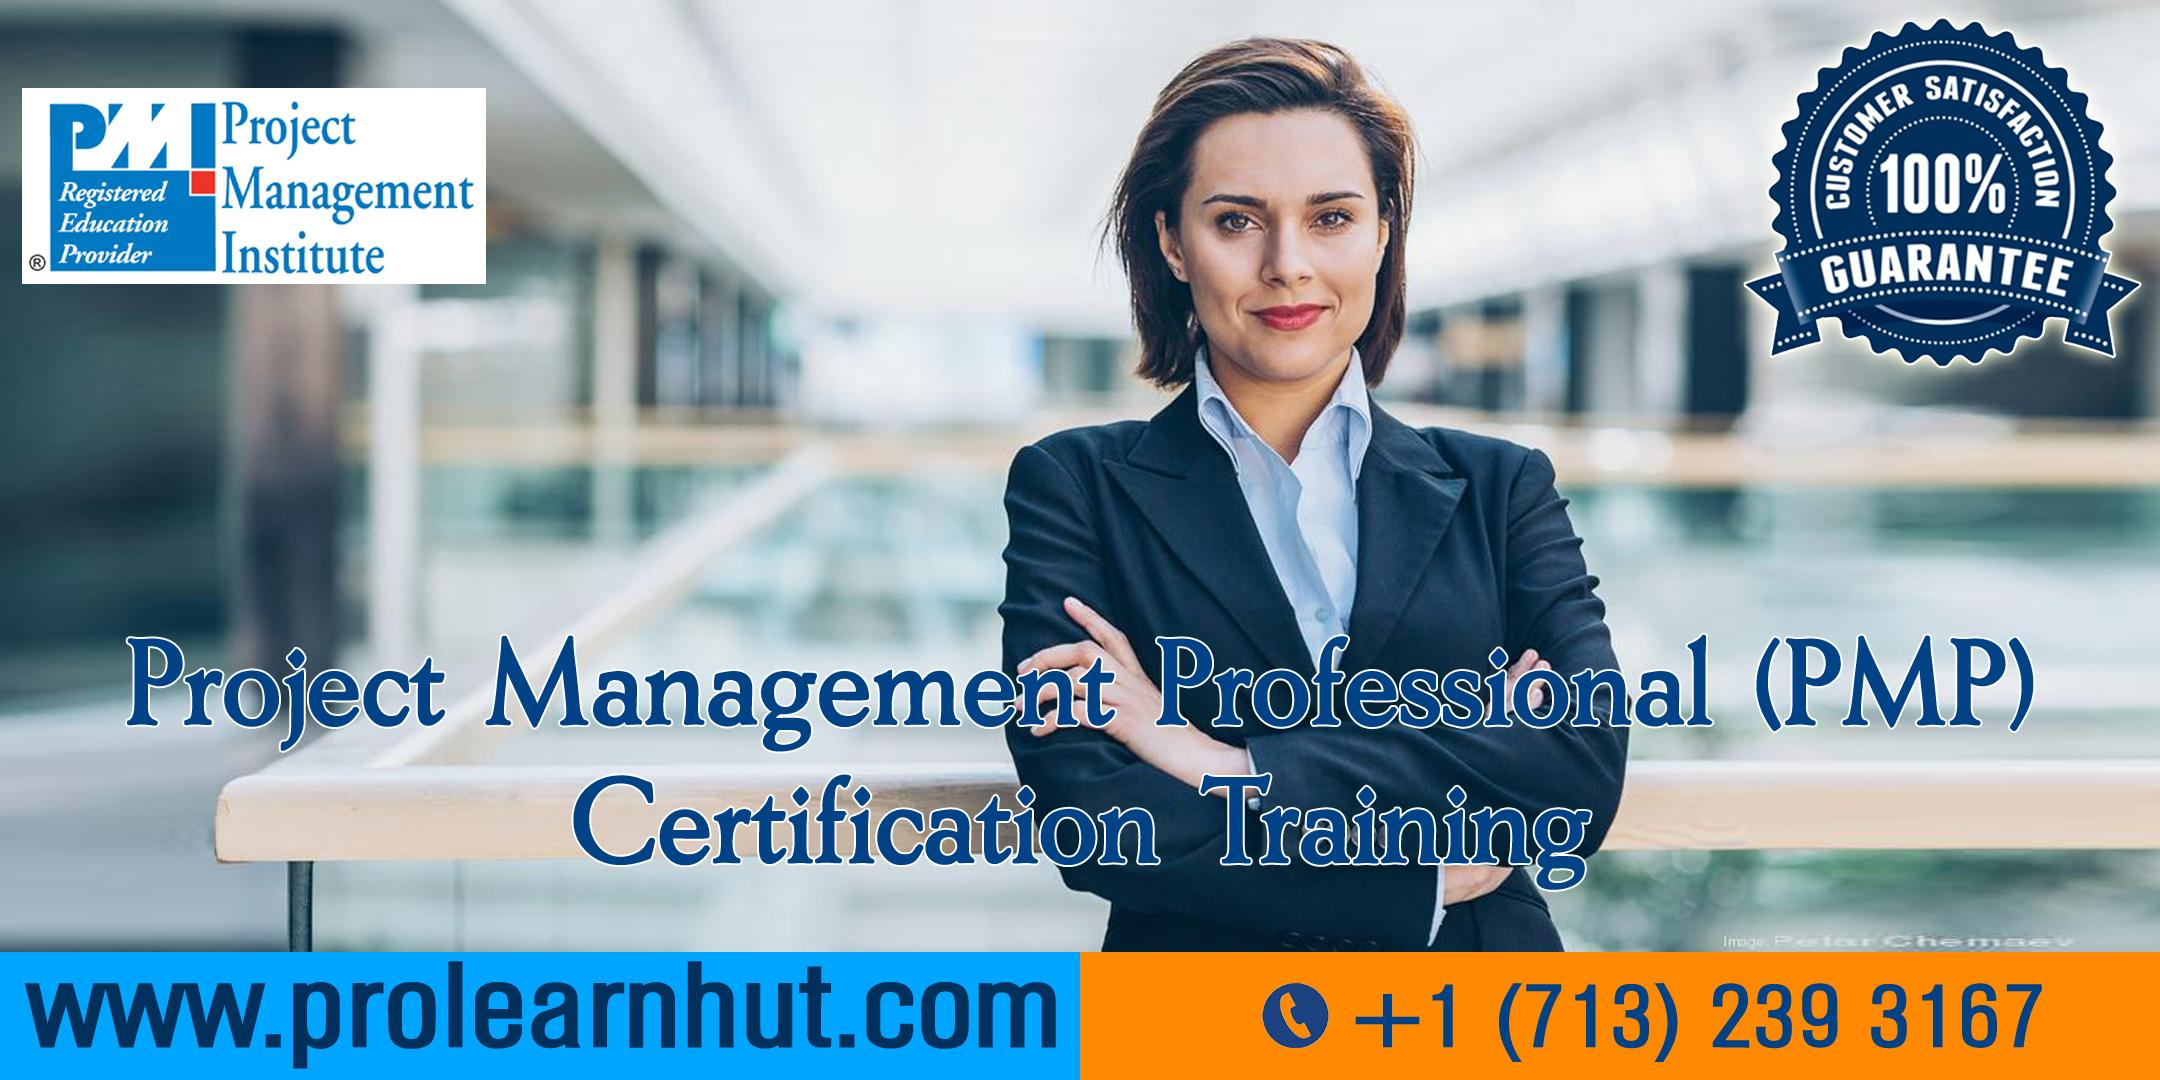 PMP Certification   Project Management Certification  PMP Training in Miami, FL   ProLearnHut